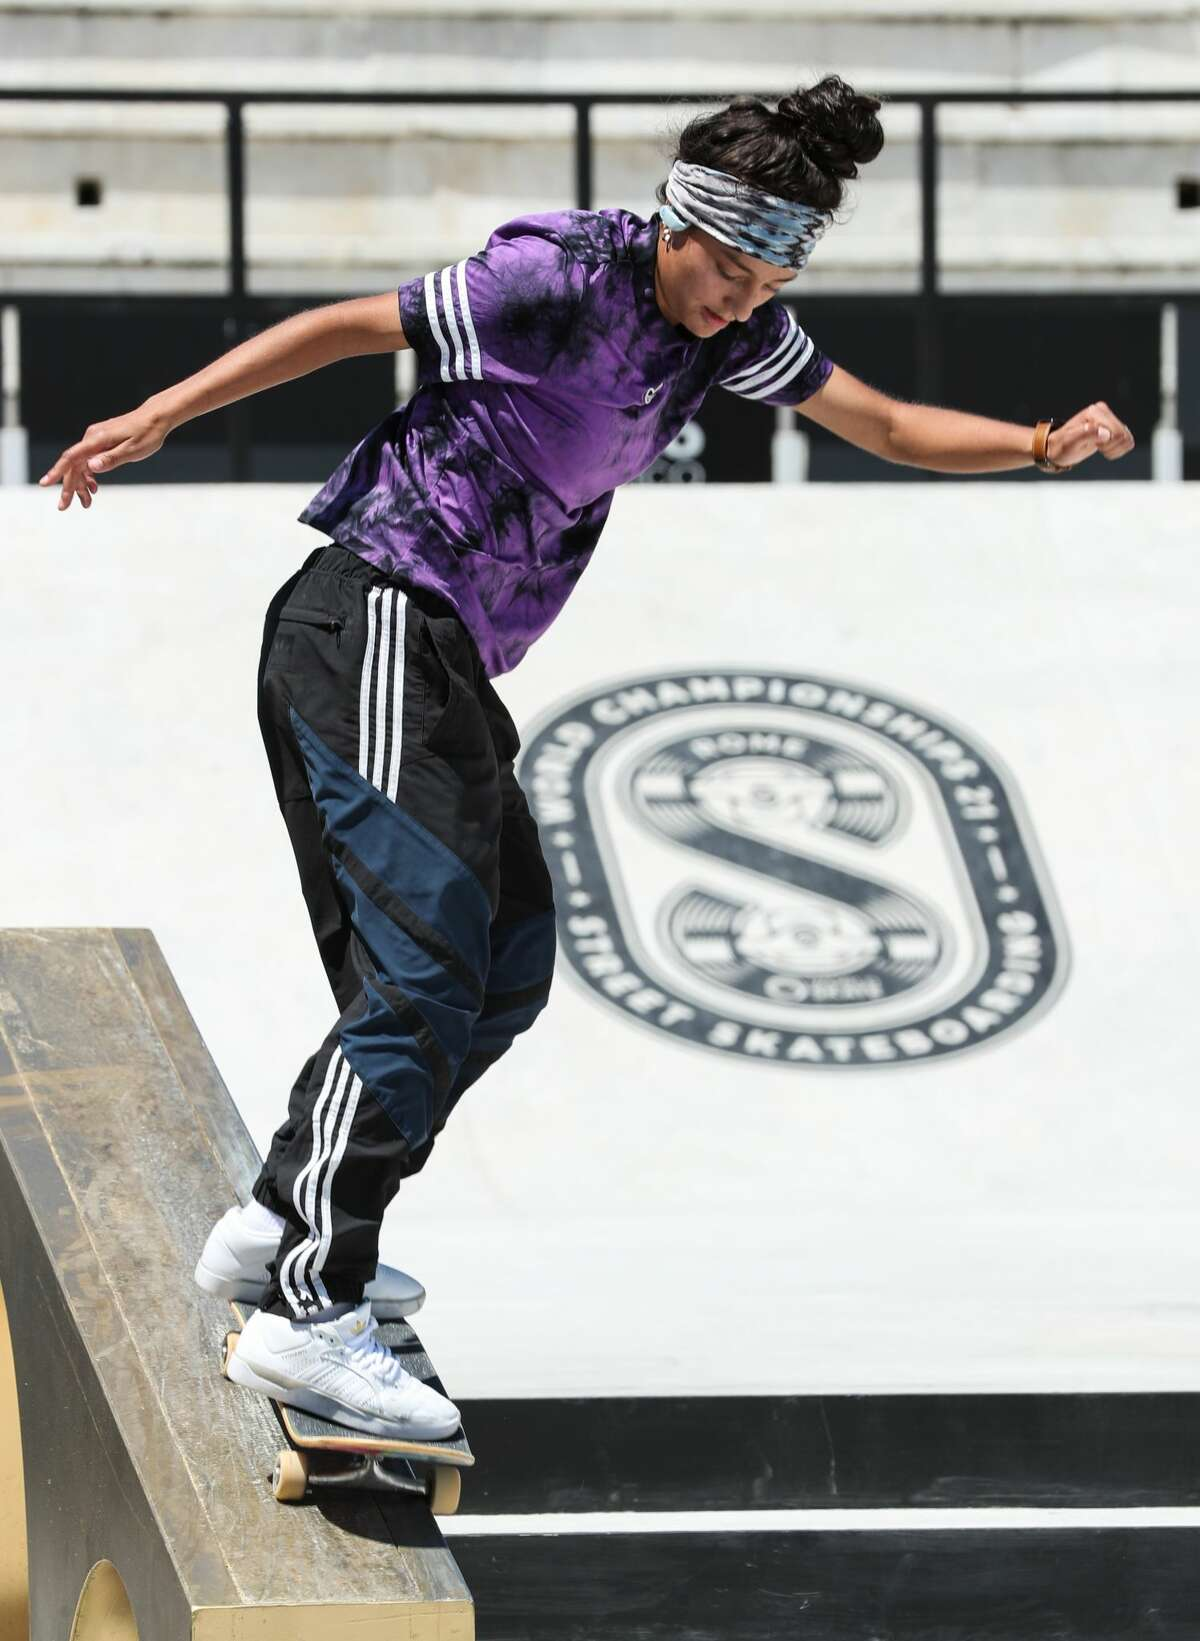 Alexis Sablone of the United States competes during the Women's Semifinal of the Street Skateboarding World Championships, a qualifying event for Tokyo Olympic Games, in Rome, Italy, June 4, 2021.